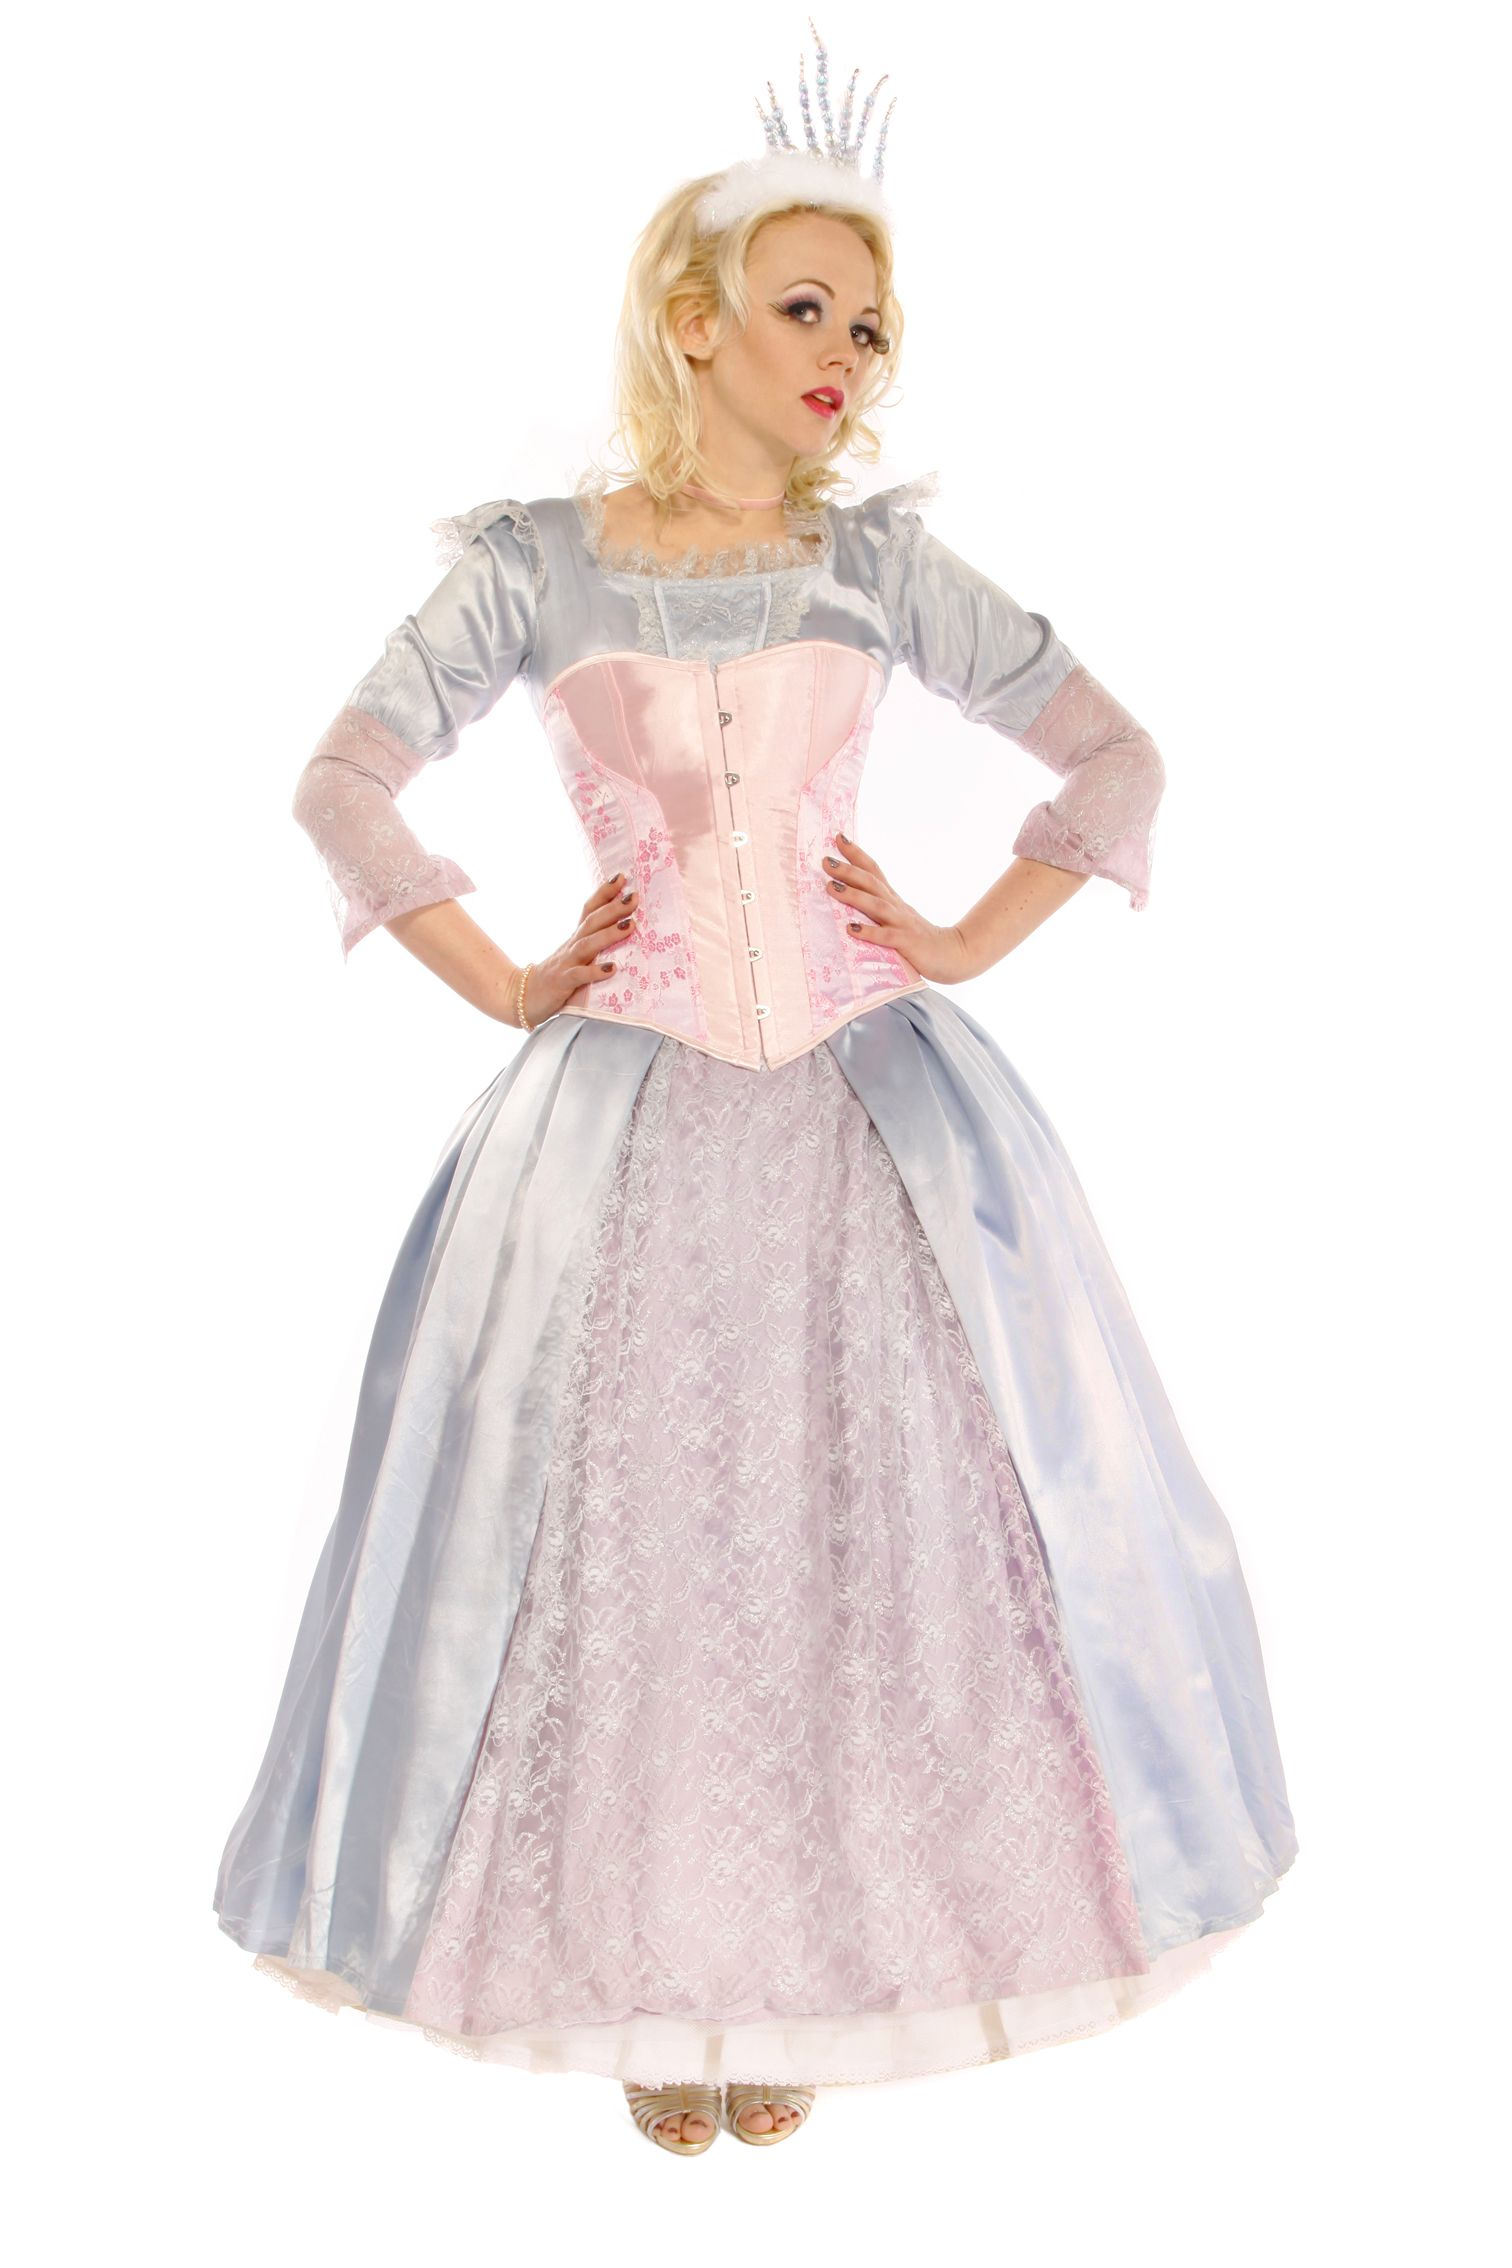 15729f74d1d9 Ice Princess Costume Ice Princess Costume, Christmas Party Themes, Winter  Wonderland, Party Costumes